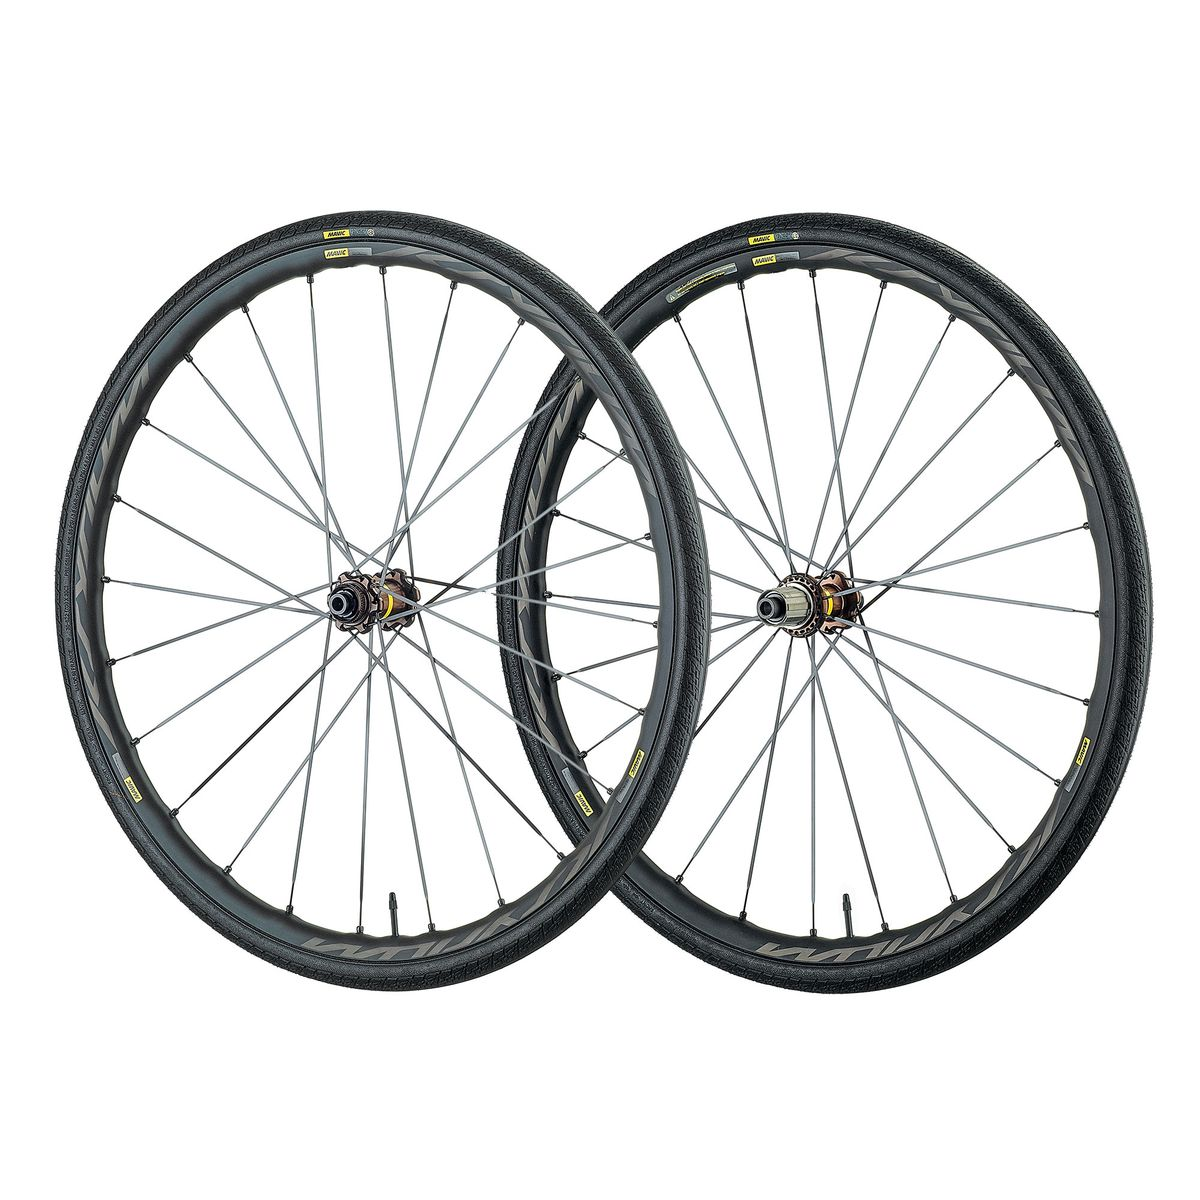 "Ksyrium Elite Allroad Disc Centerlock WTS 28""/700 C road wheels"